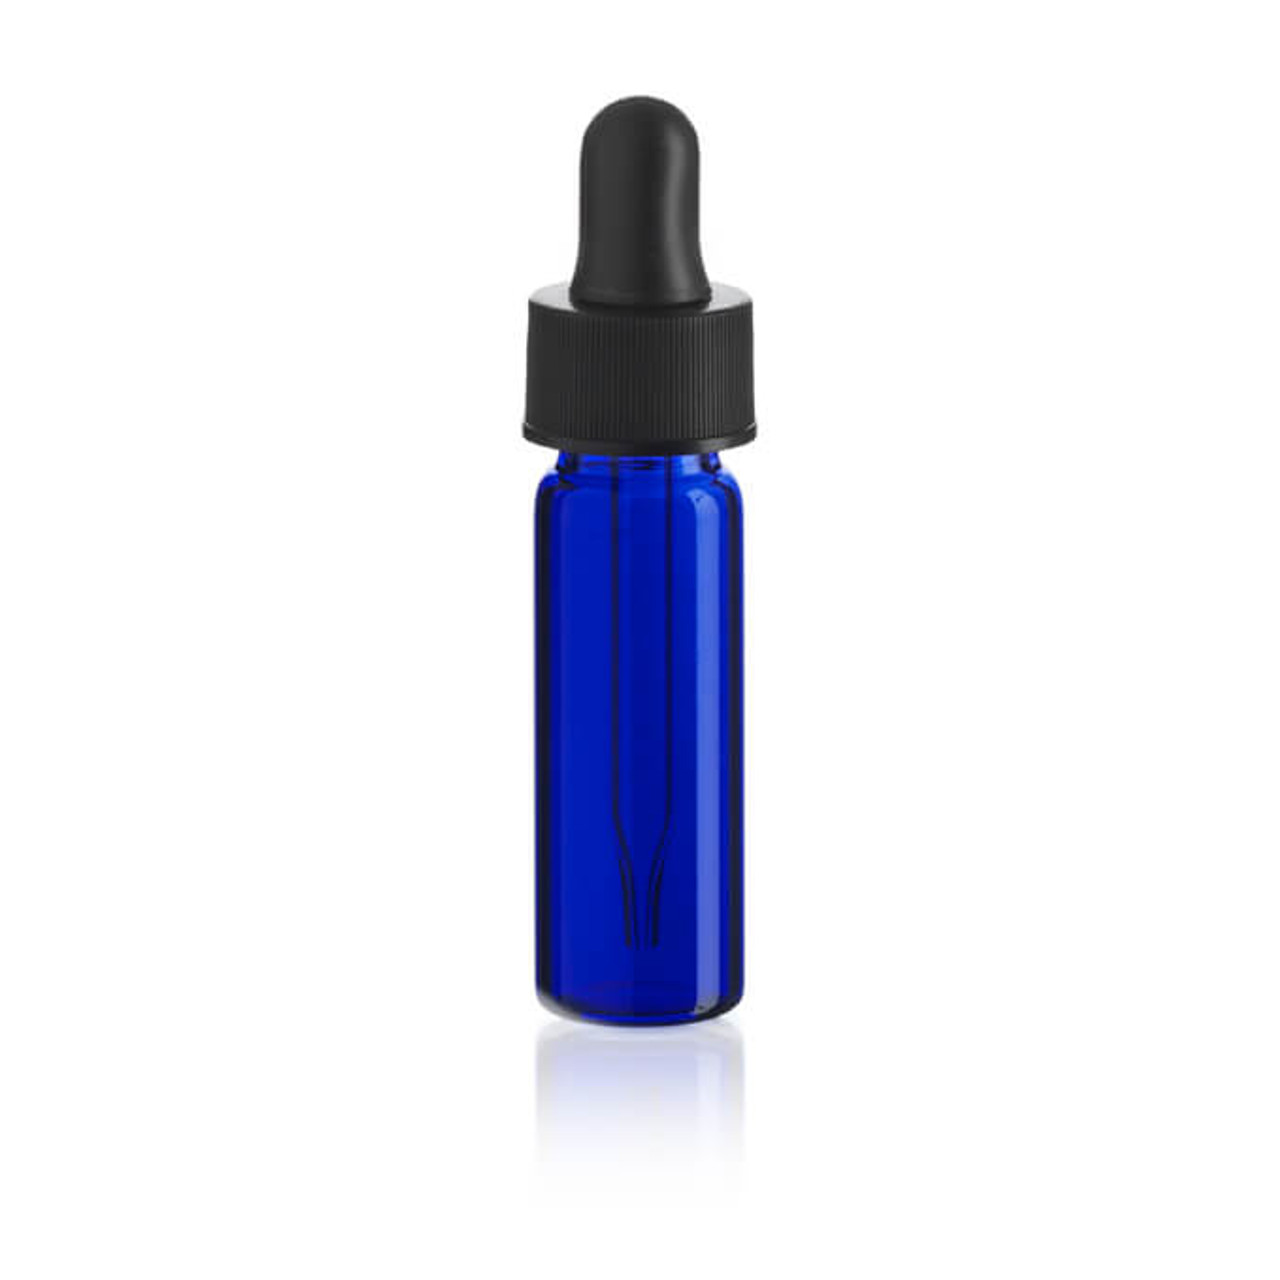 1 dram cobalt blue glass vials with dropper